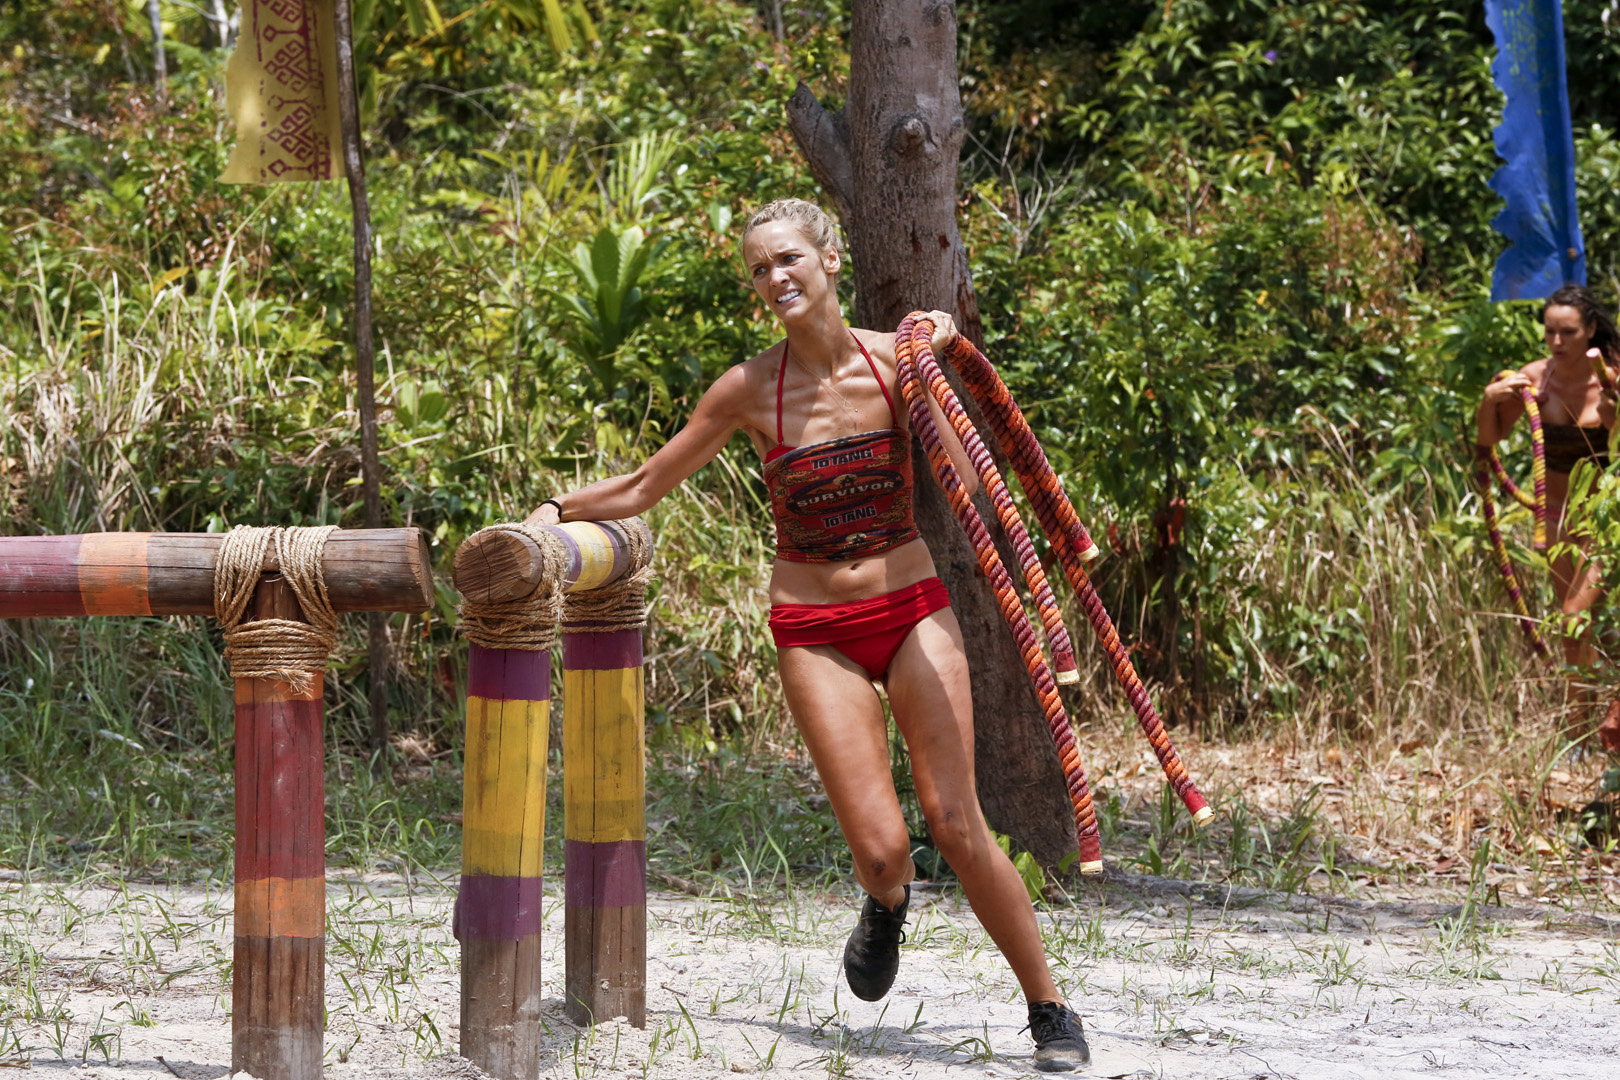 6. What have you learned from your experience on Survivor?